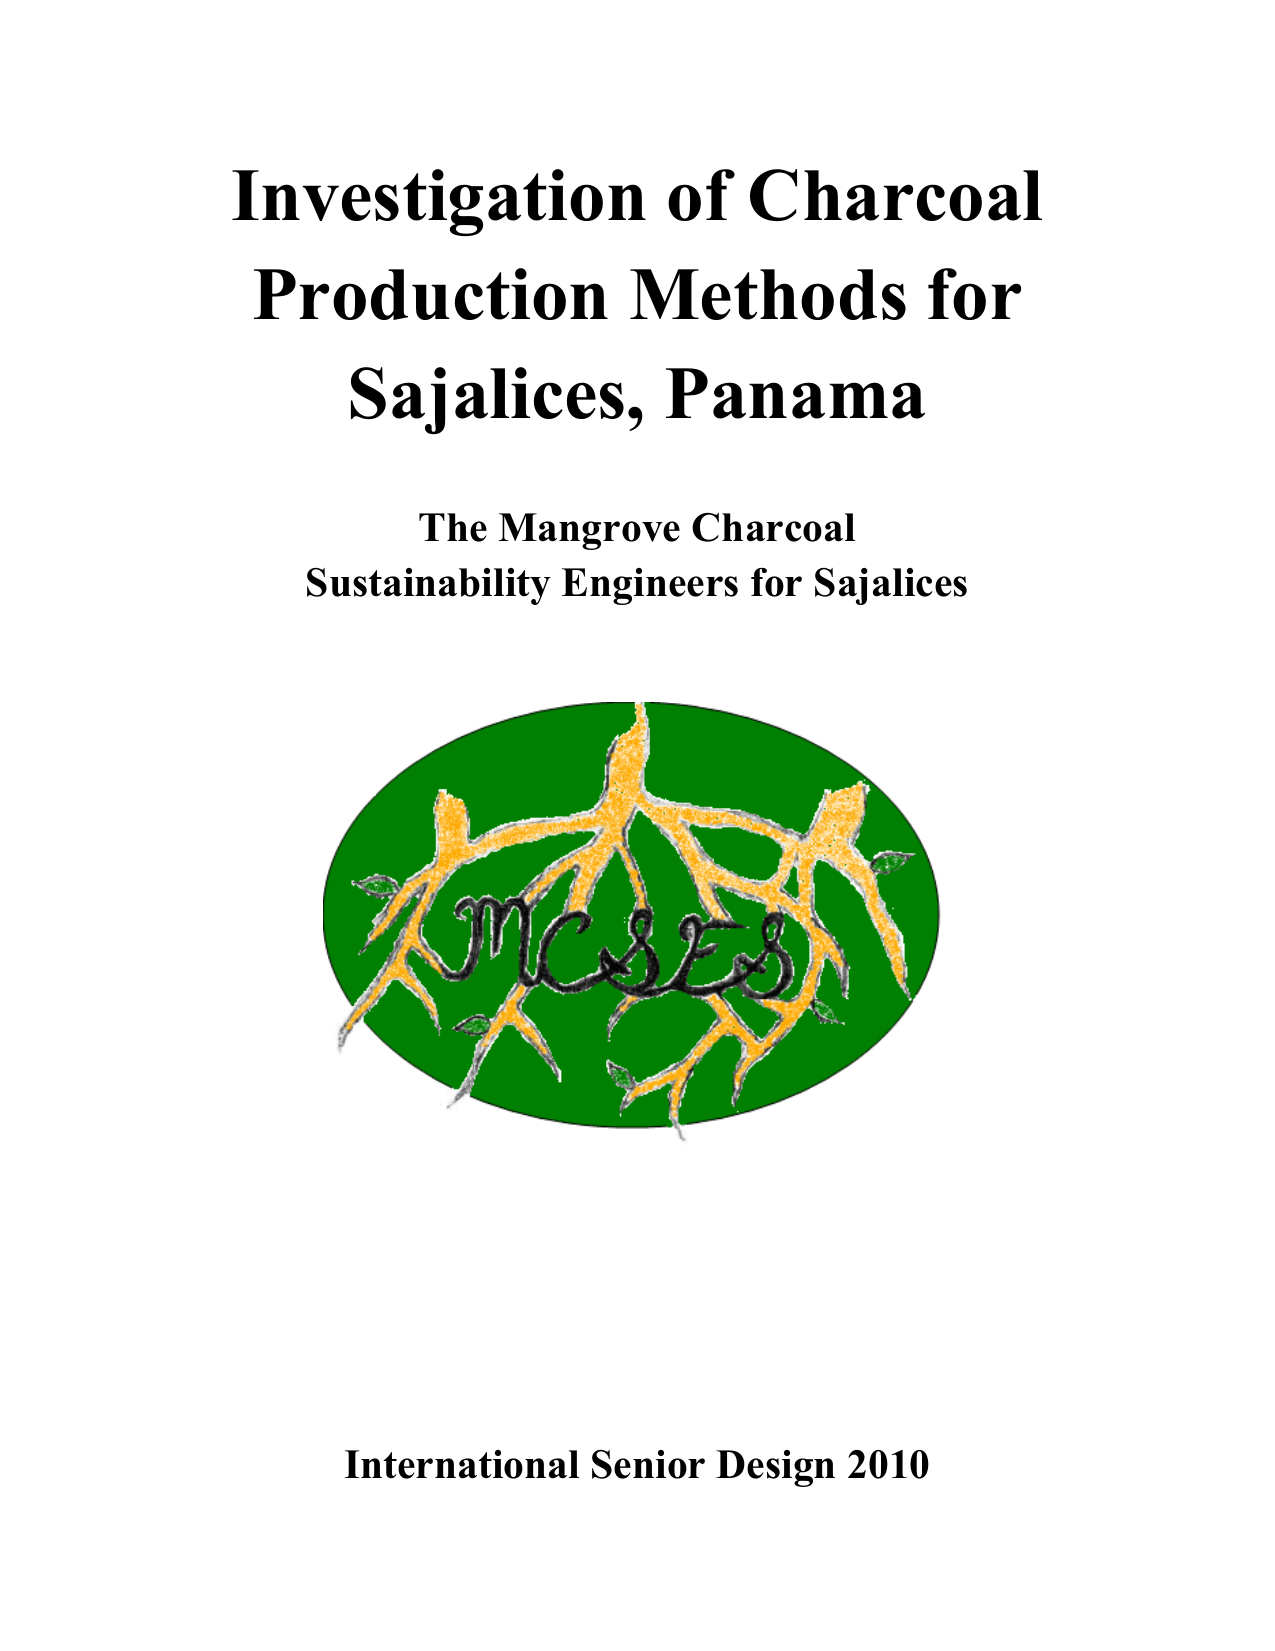 Investigation of Charcoal Production Methods for Sajalices